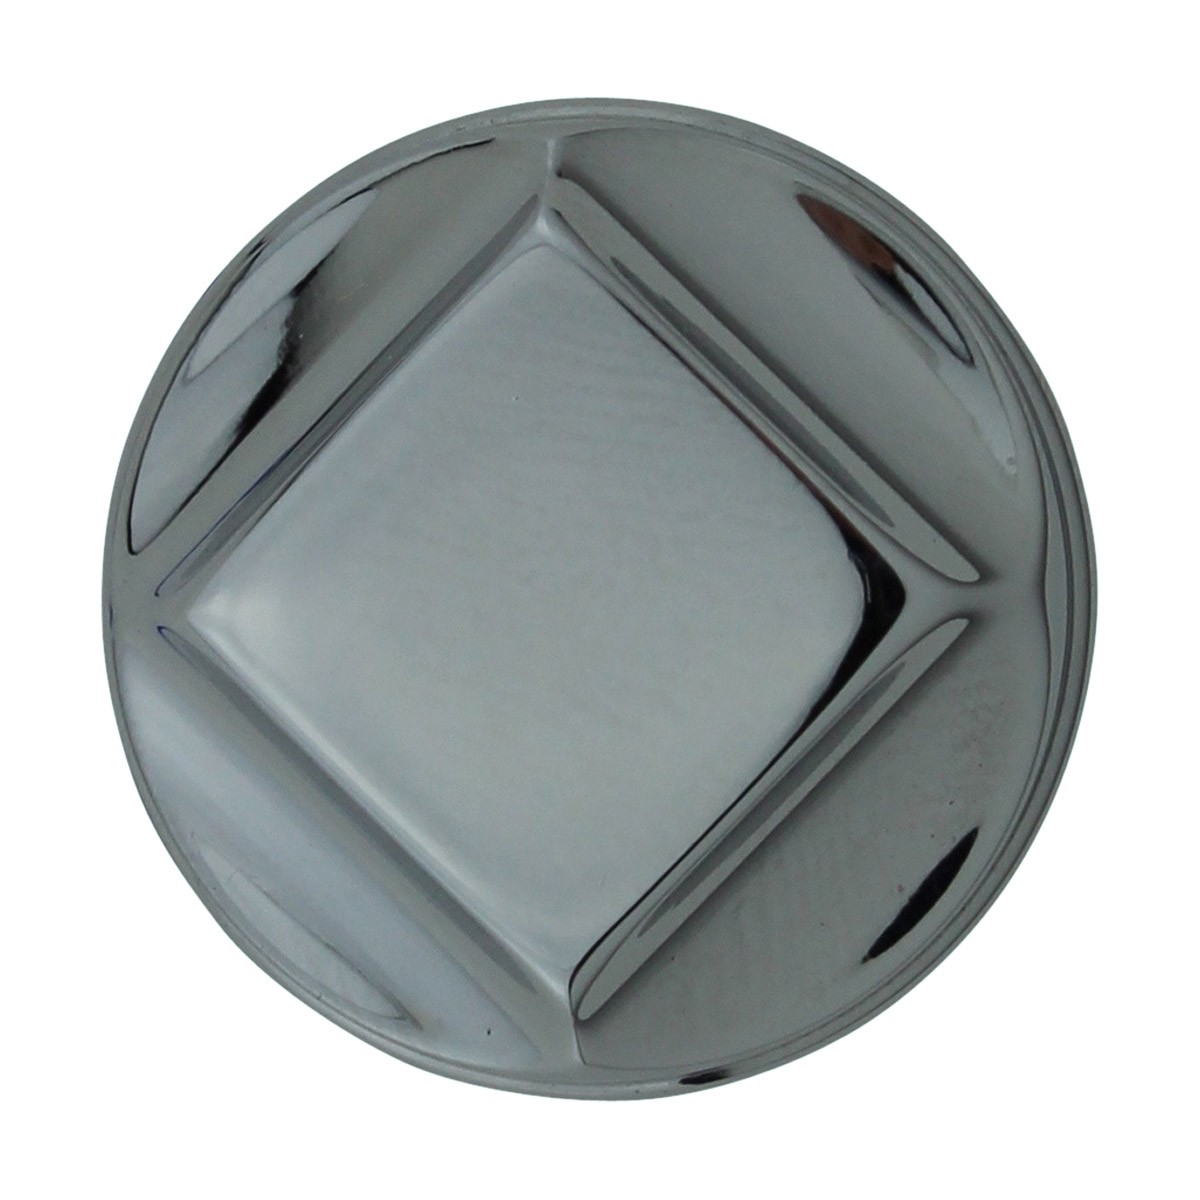 Cabinet Knob Bright Chrome 1 Dia X 78 Proj Modern Kitchen Cabinet Hardware Unique Cabinet and Drawer Chrome Knobs Antique Chrome Cabinet Knob